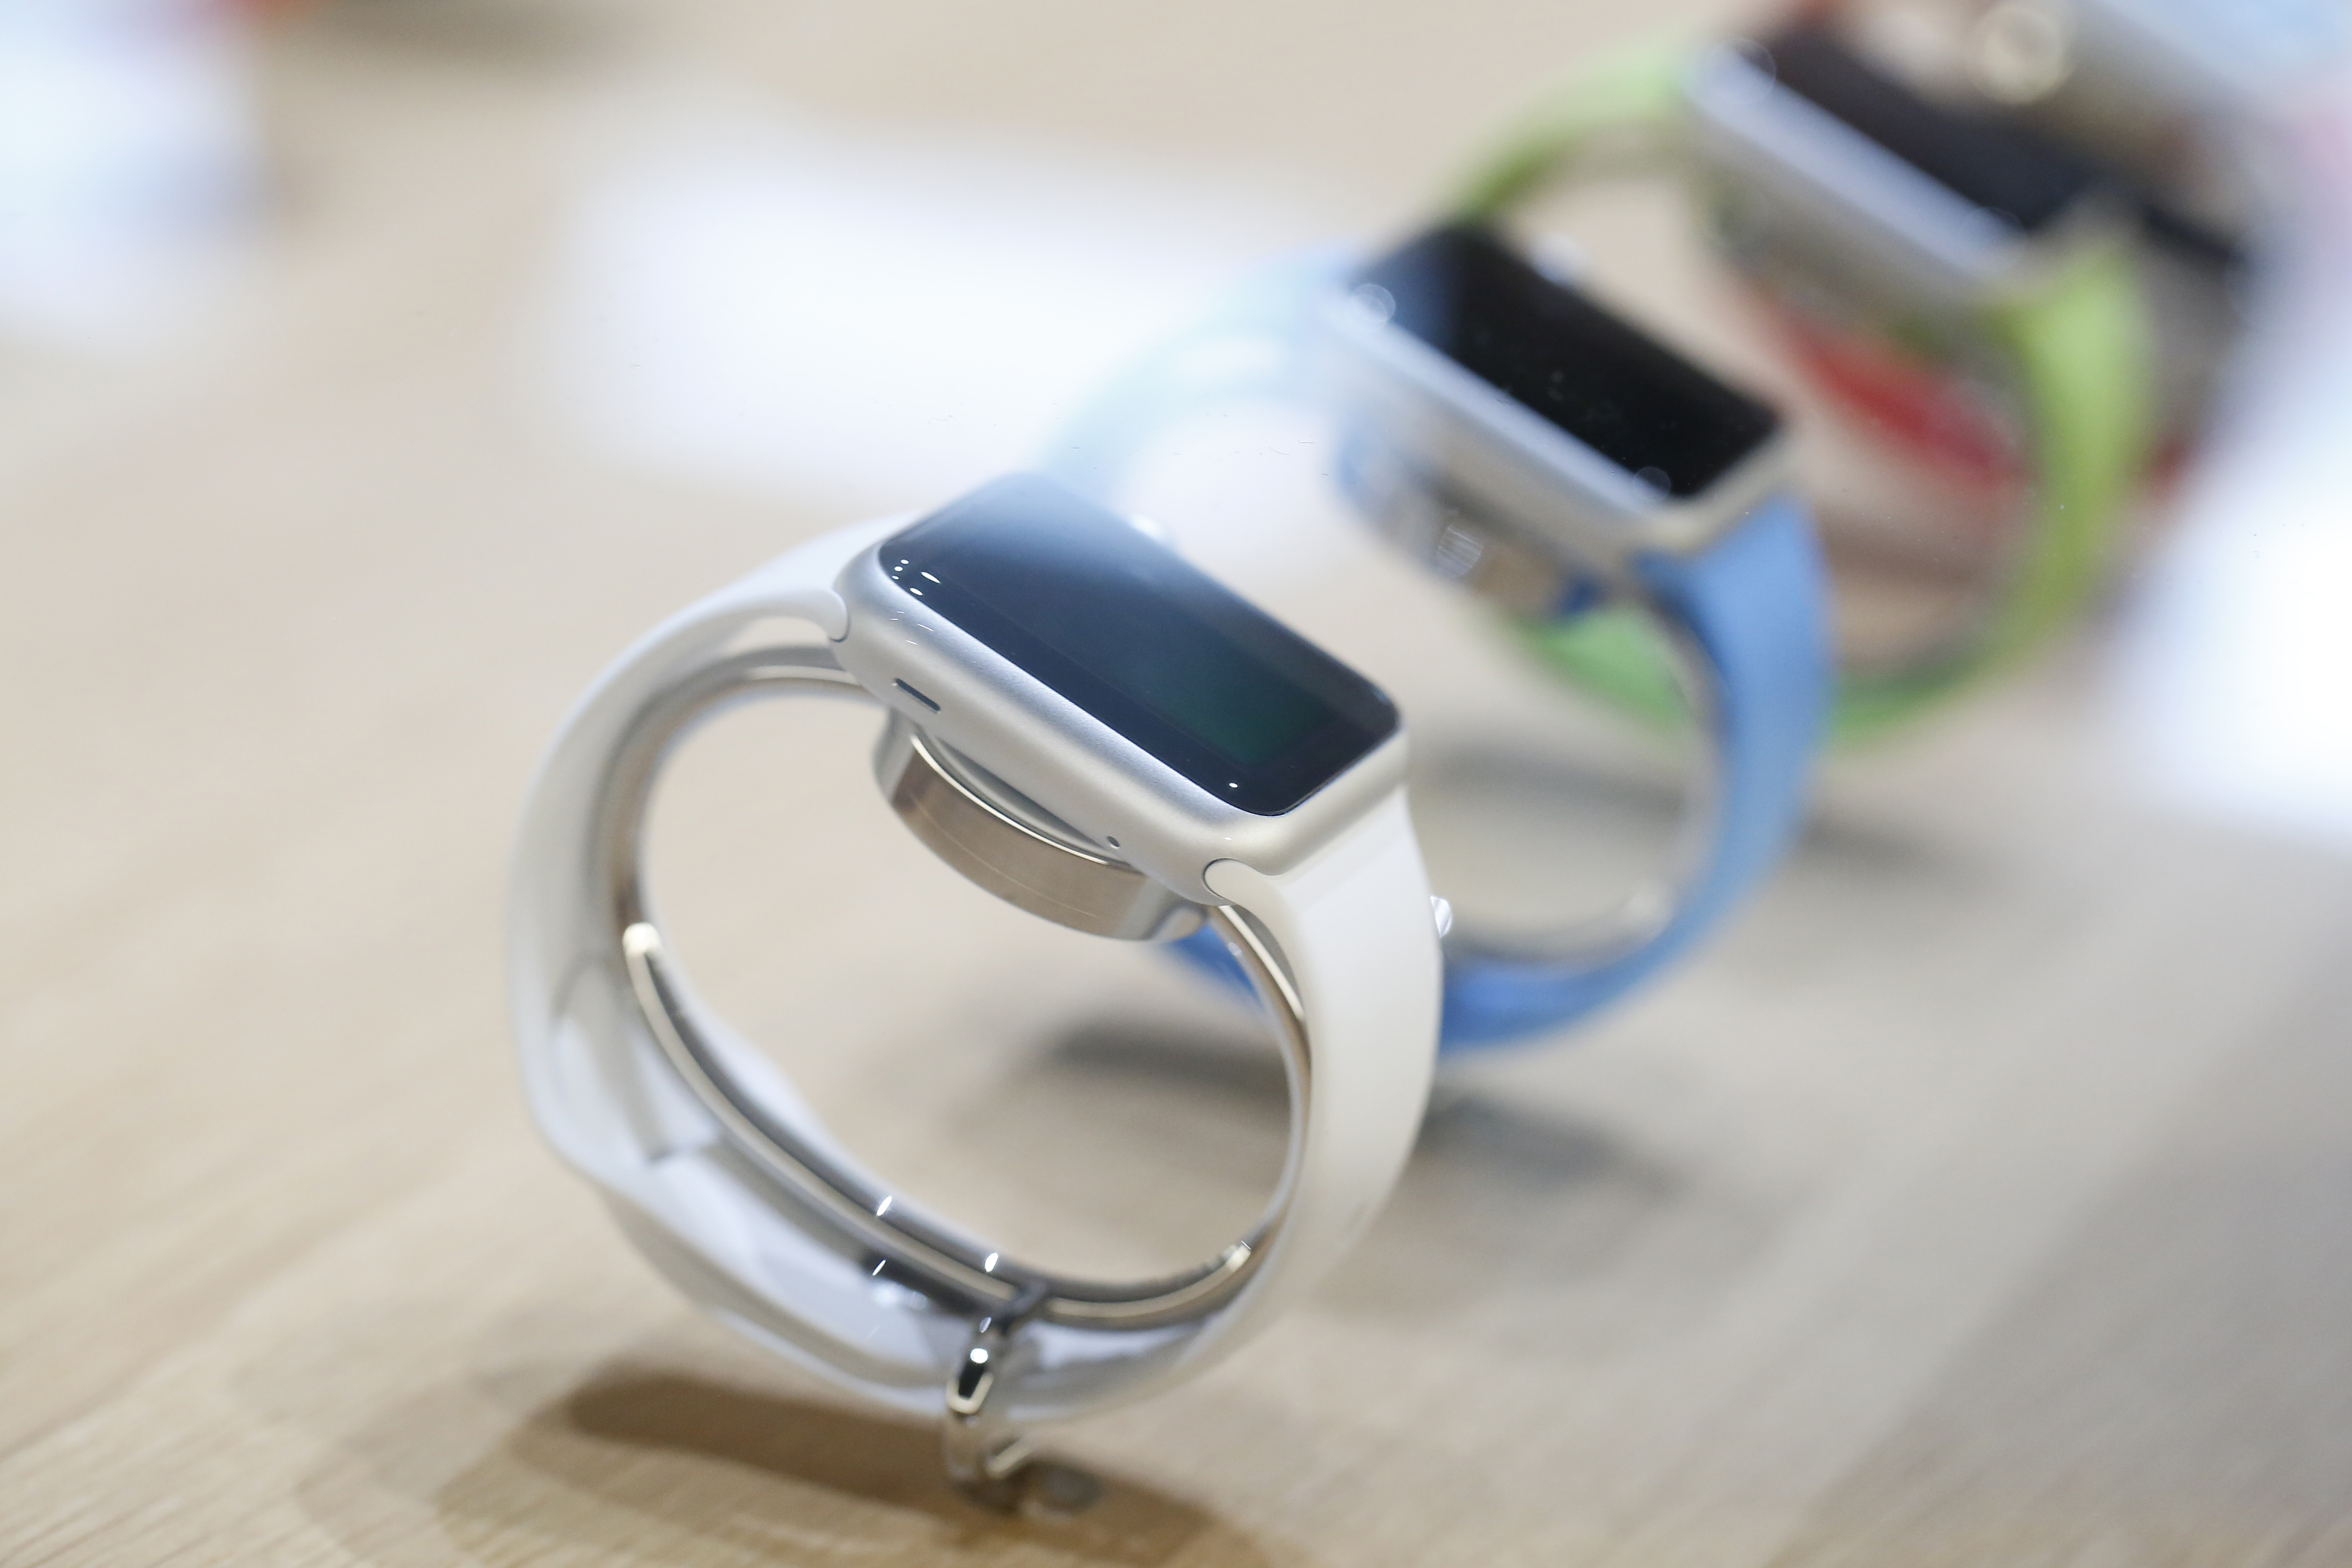 The new Apple Watch is seen on display after an Apple special event at the Yerba Buena Center for the Arts on March 9, 2015 in San Francisco, California.